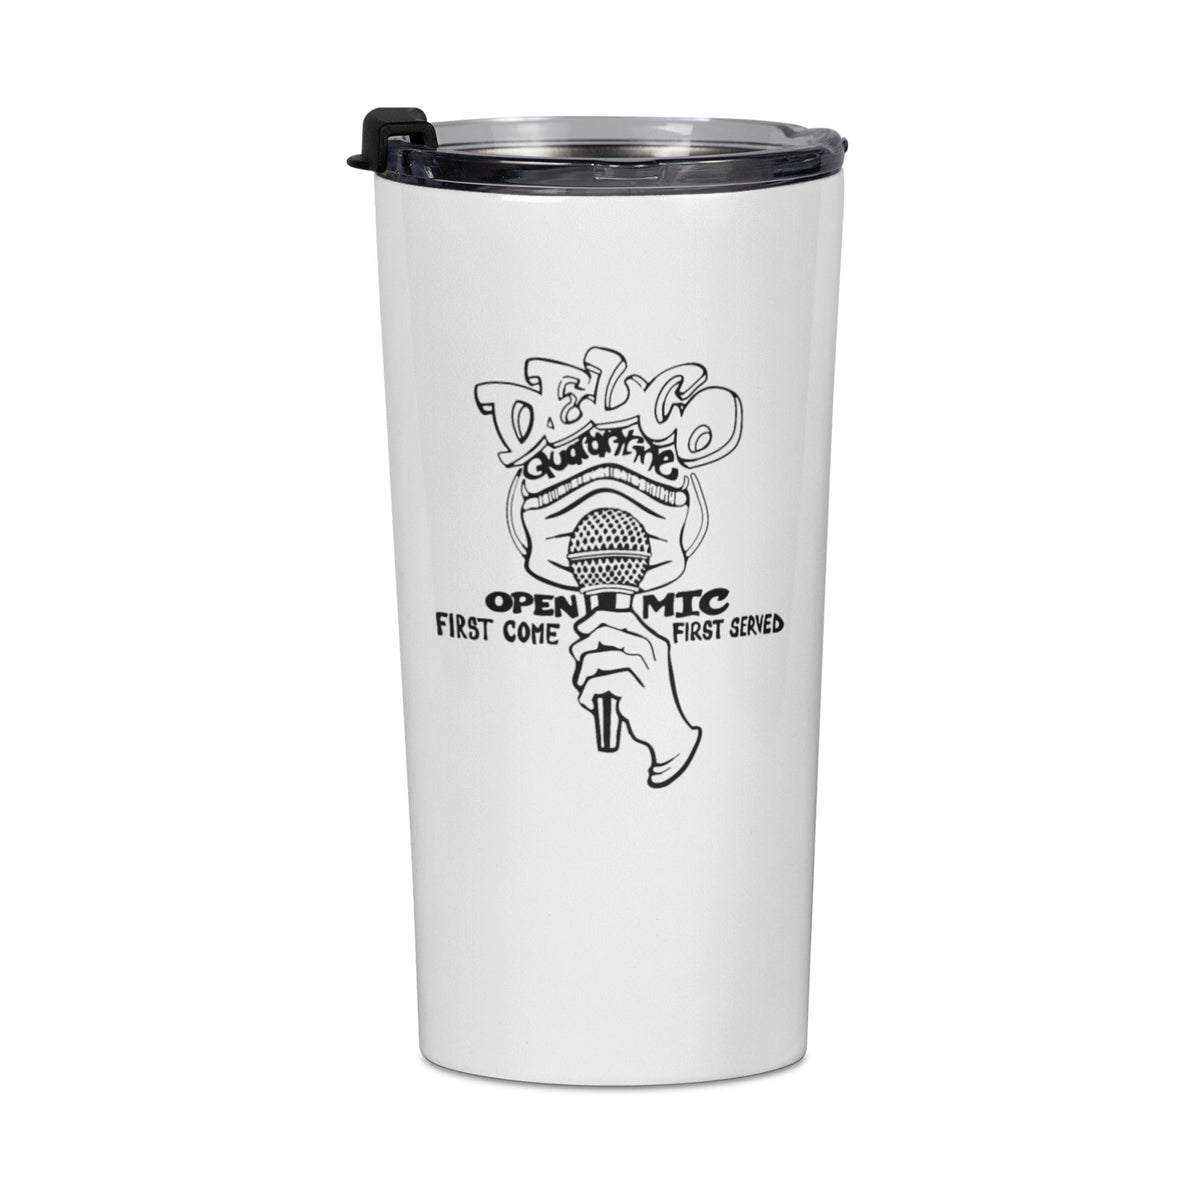 Delco Open Mic We Support PA Travel Mug